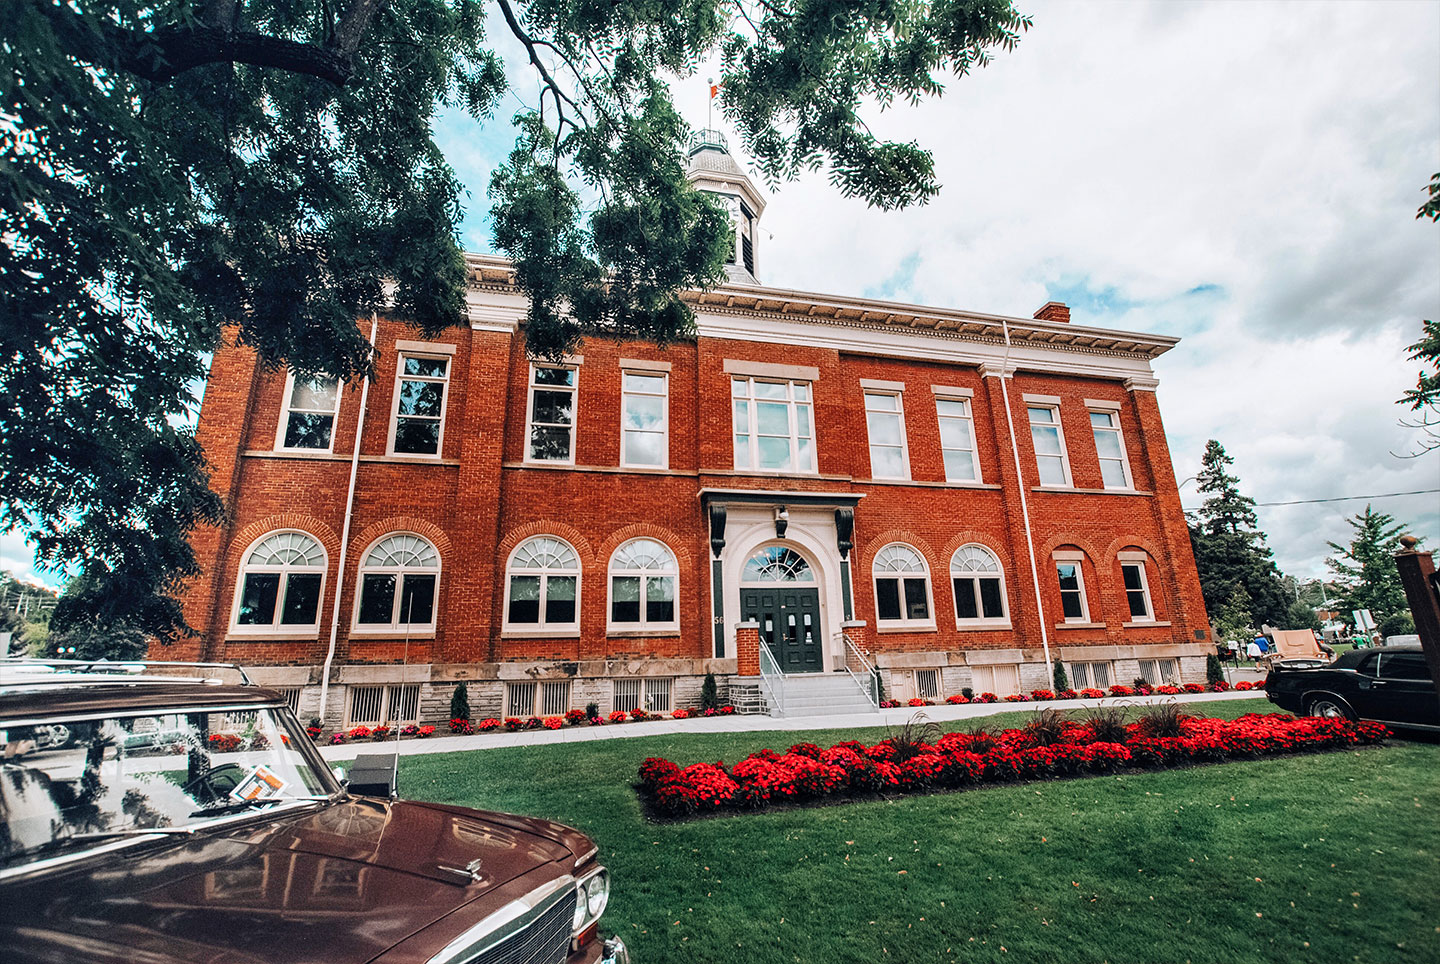 Port Hope historic Town Hall also doubled as the Derry Maine library